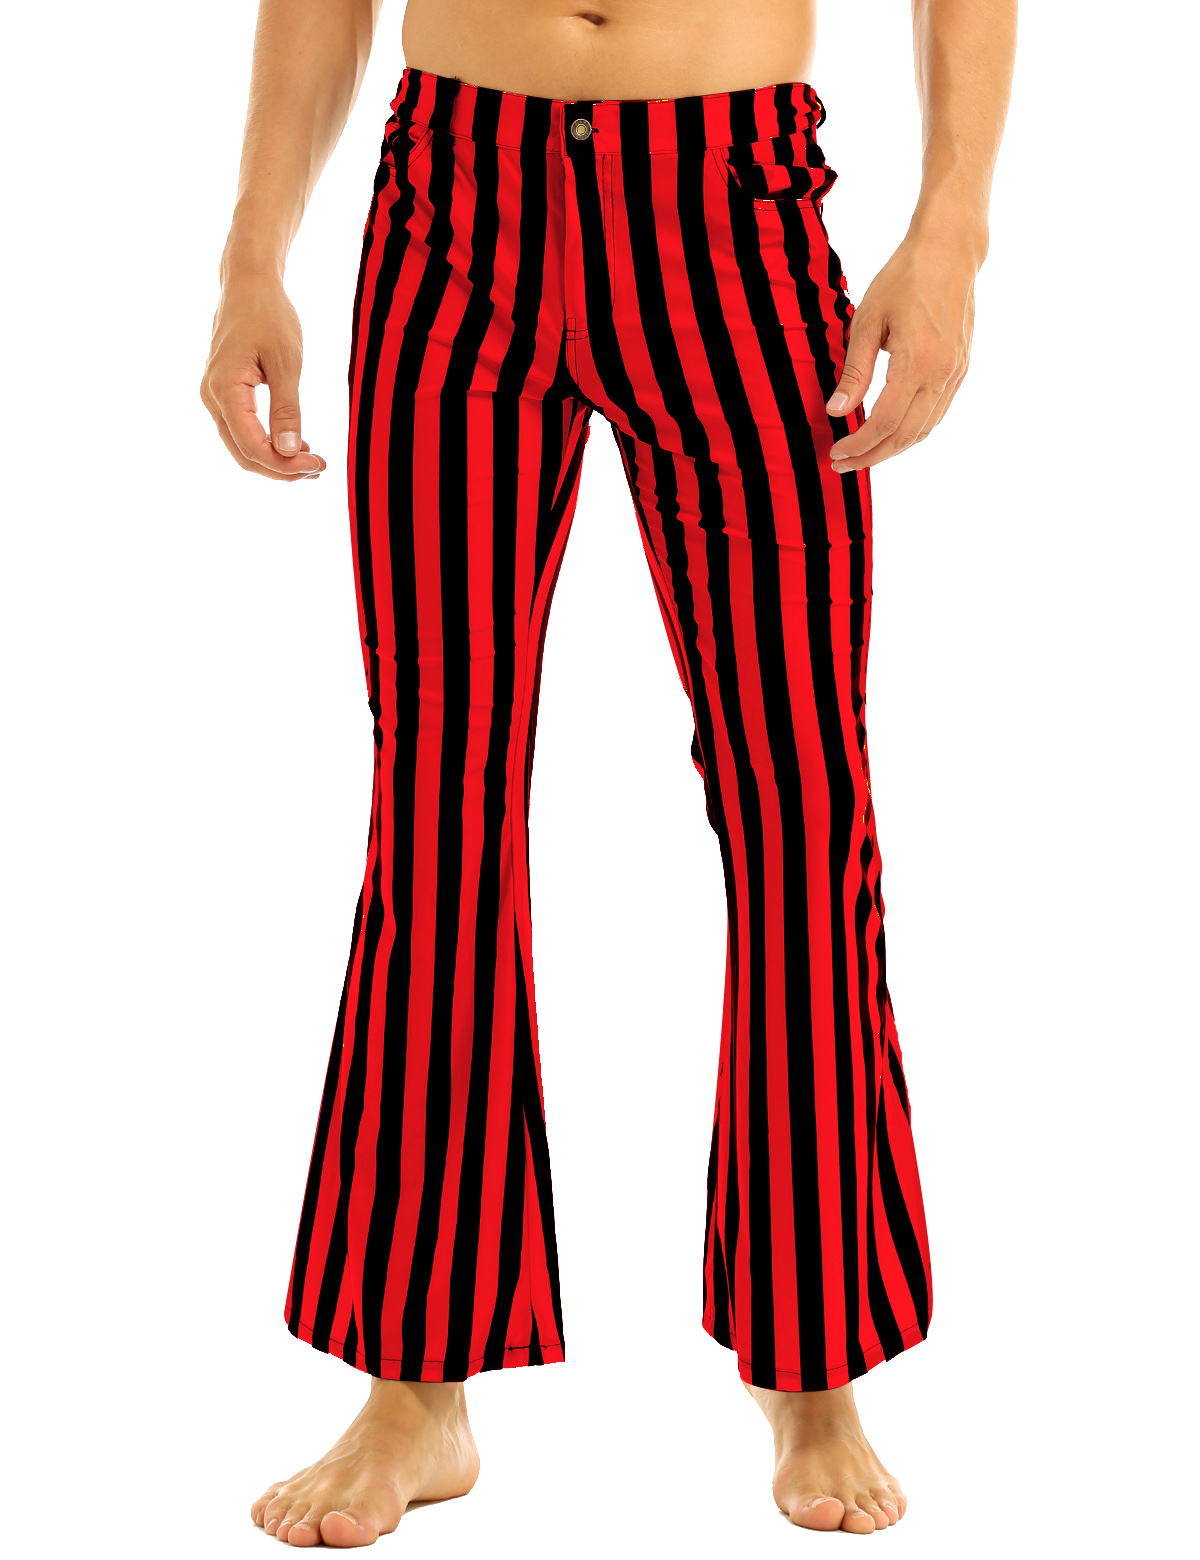 Halloween Party Costume for Men Vintage Stripe Pant Male Long Pant Stretch Bell Bottom Trousers Western Streetwear Clothes Homme 14